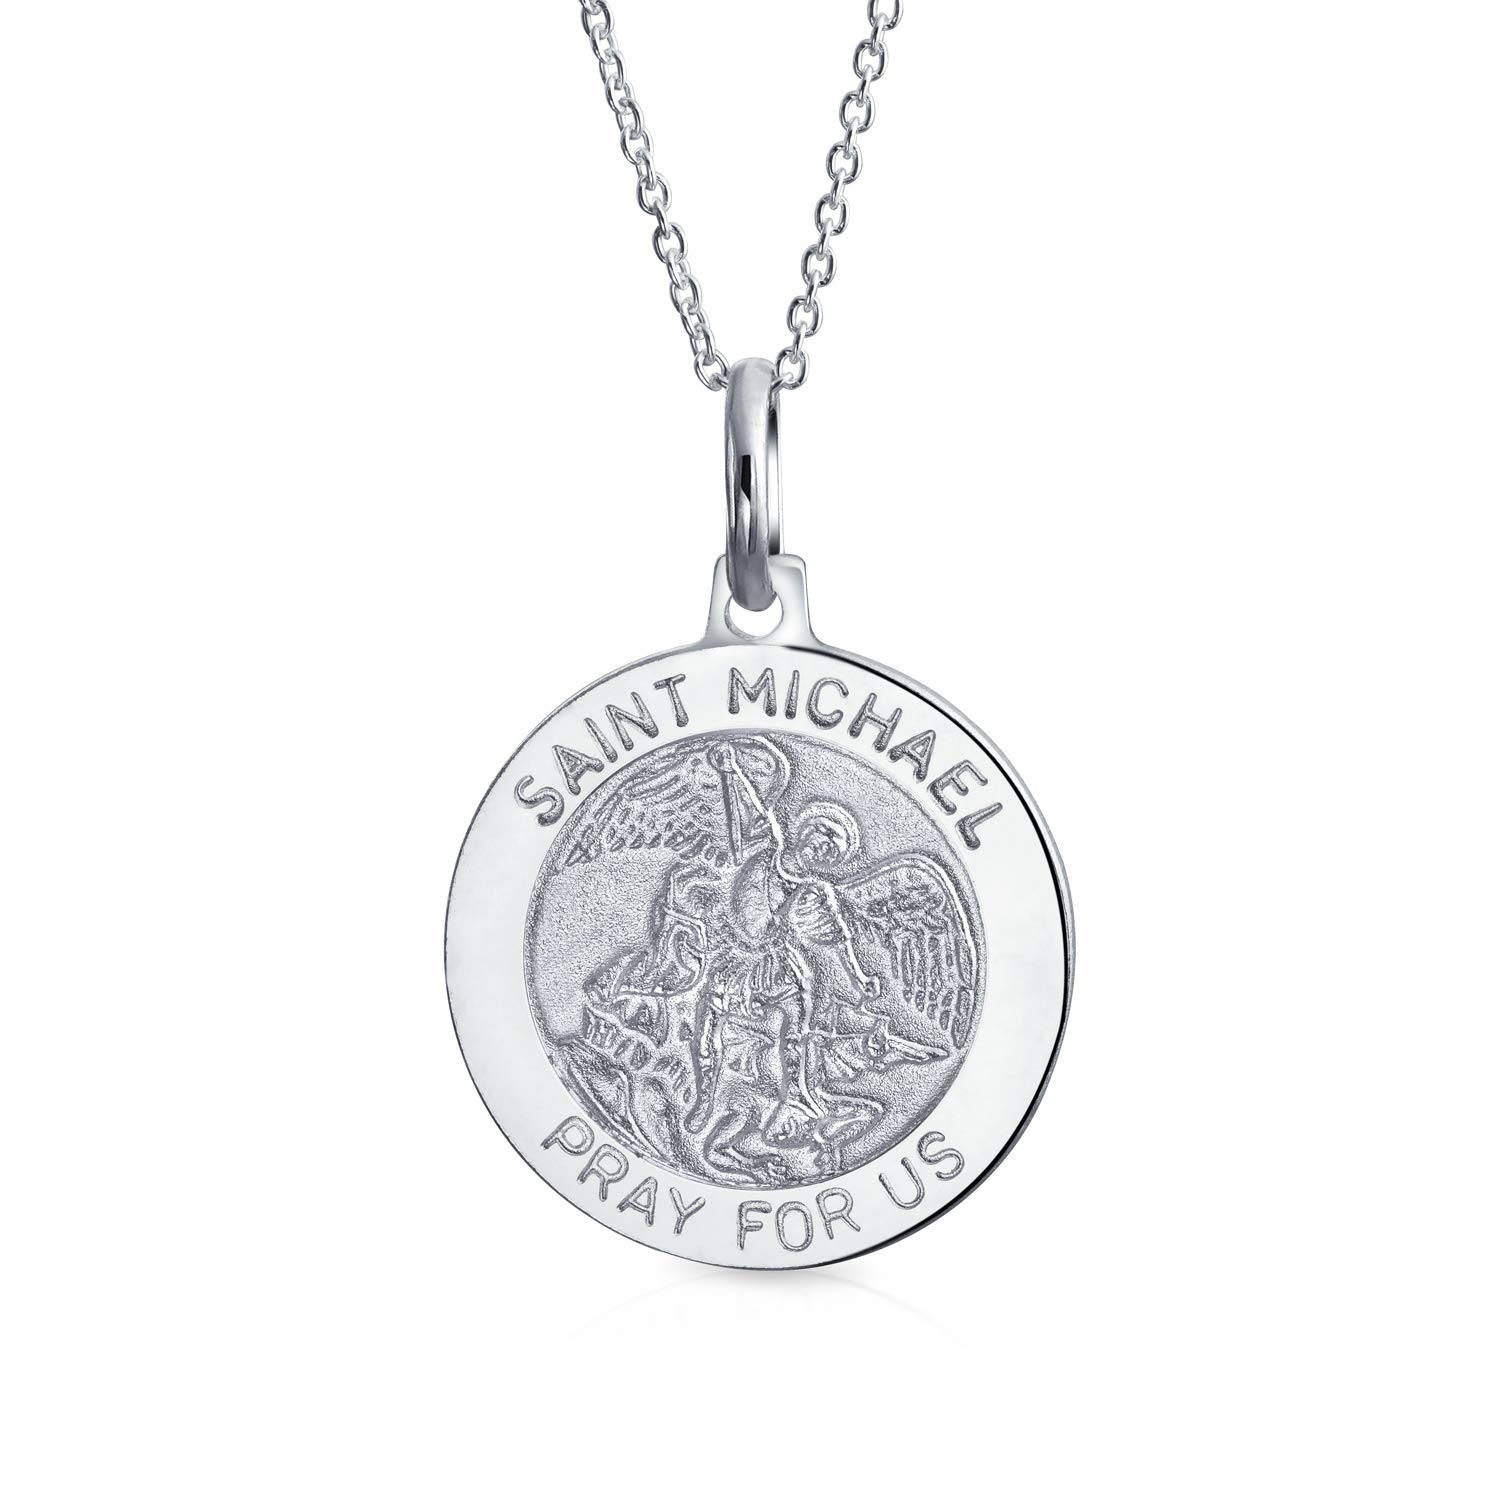 Christopher Protect Us Medal Charm Pendant MSRP $25 .925 Sterling Silver St